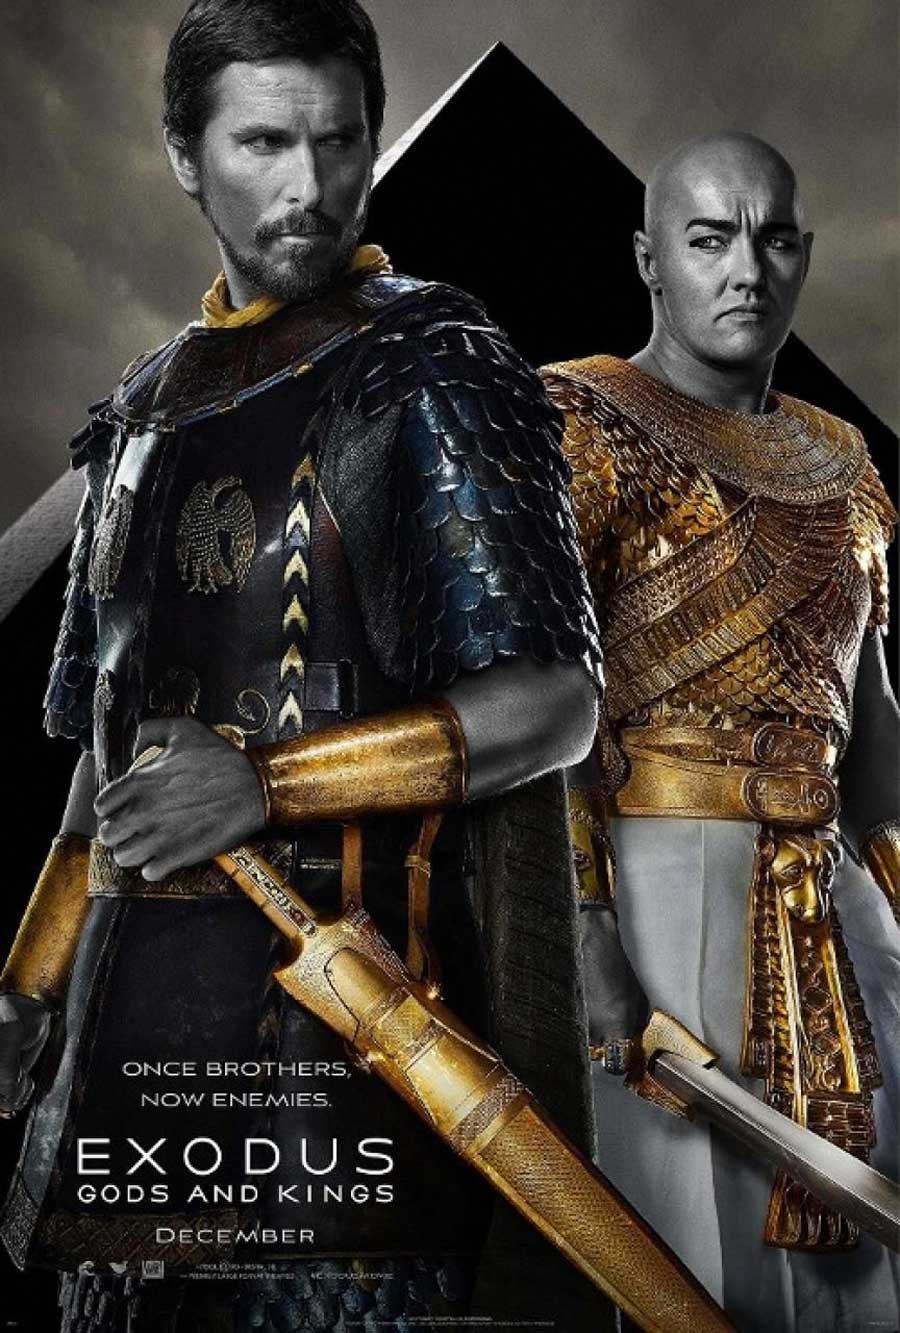 Poster for Exodus: Gods and Kings